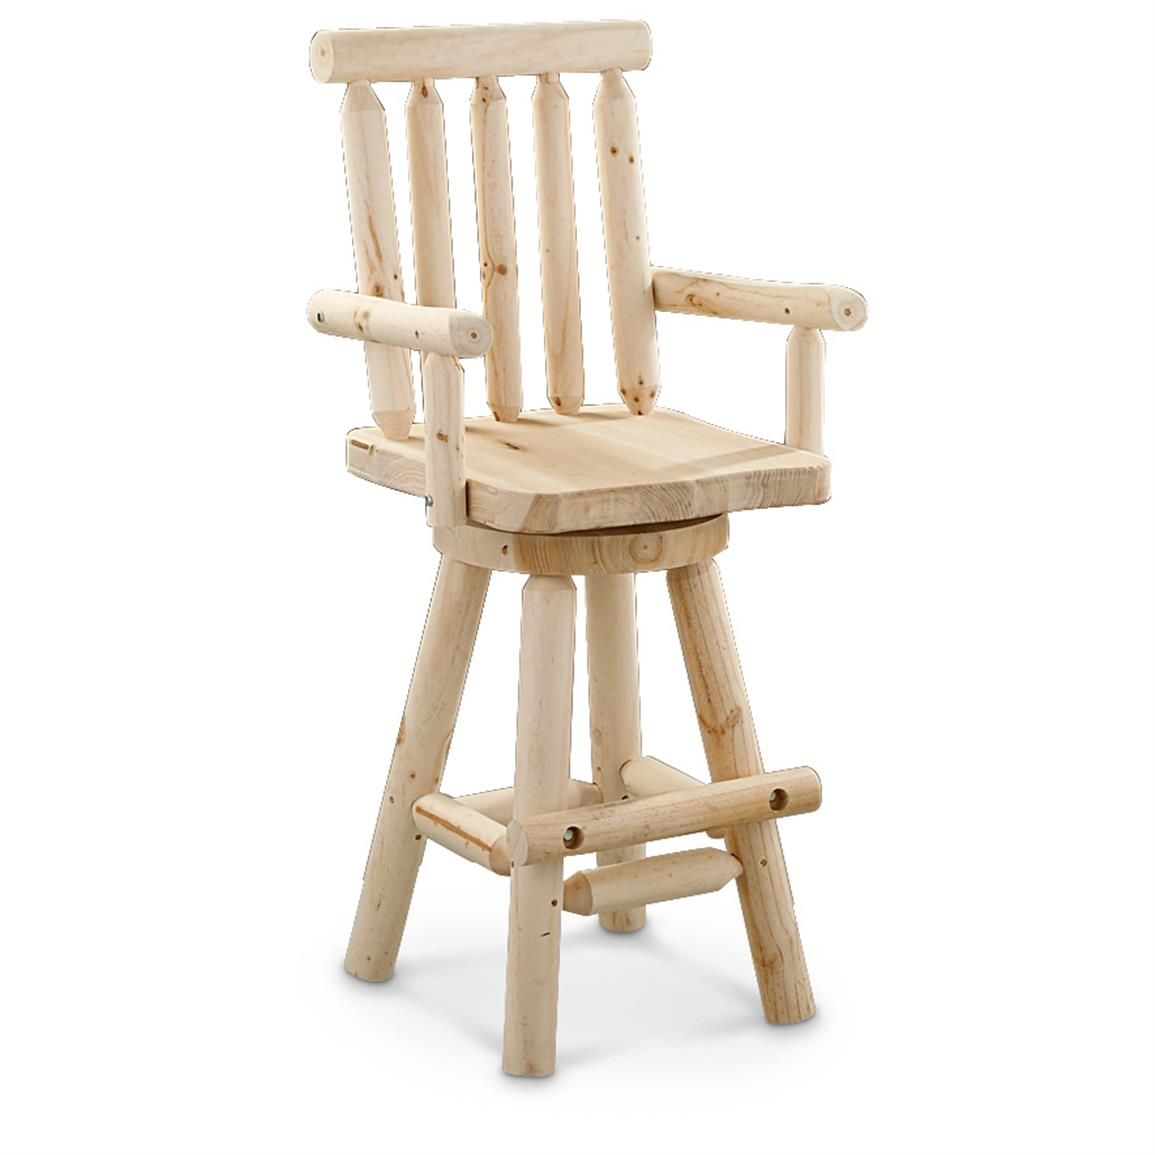 Castlecreek log bar stool add a rustic look to your bar or kitchen with a strong sturdy solid wood chair